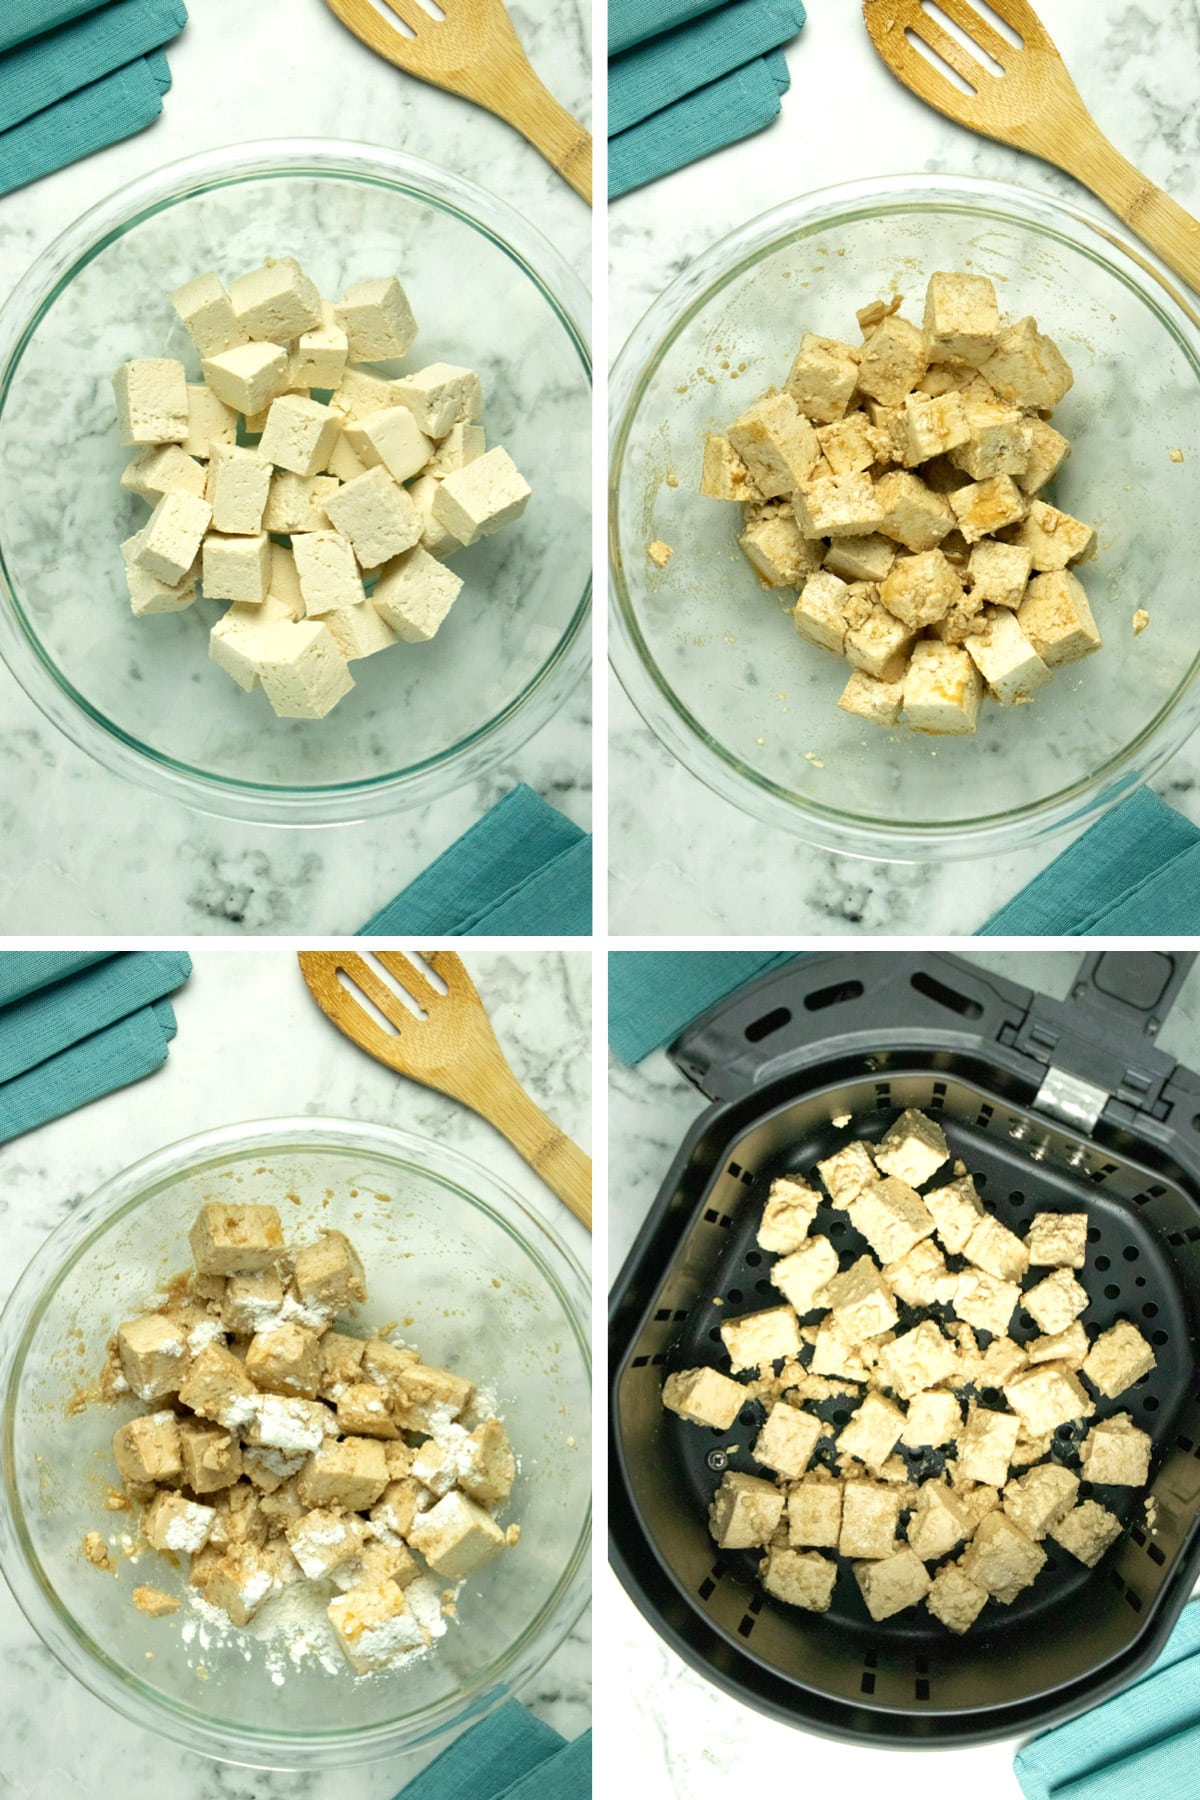 image collage of cubed tofu in a mixing bowl, tofu tossed with marinade, tofu with cornstarch added, tofu in the air fryer basket